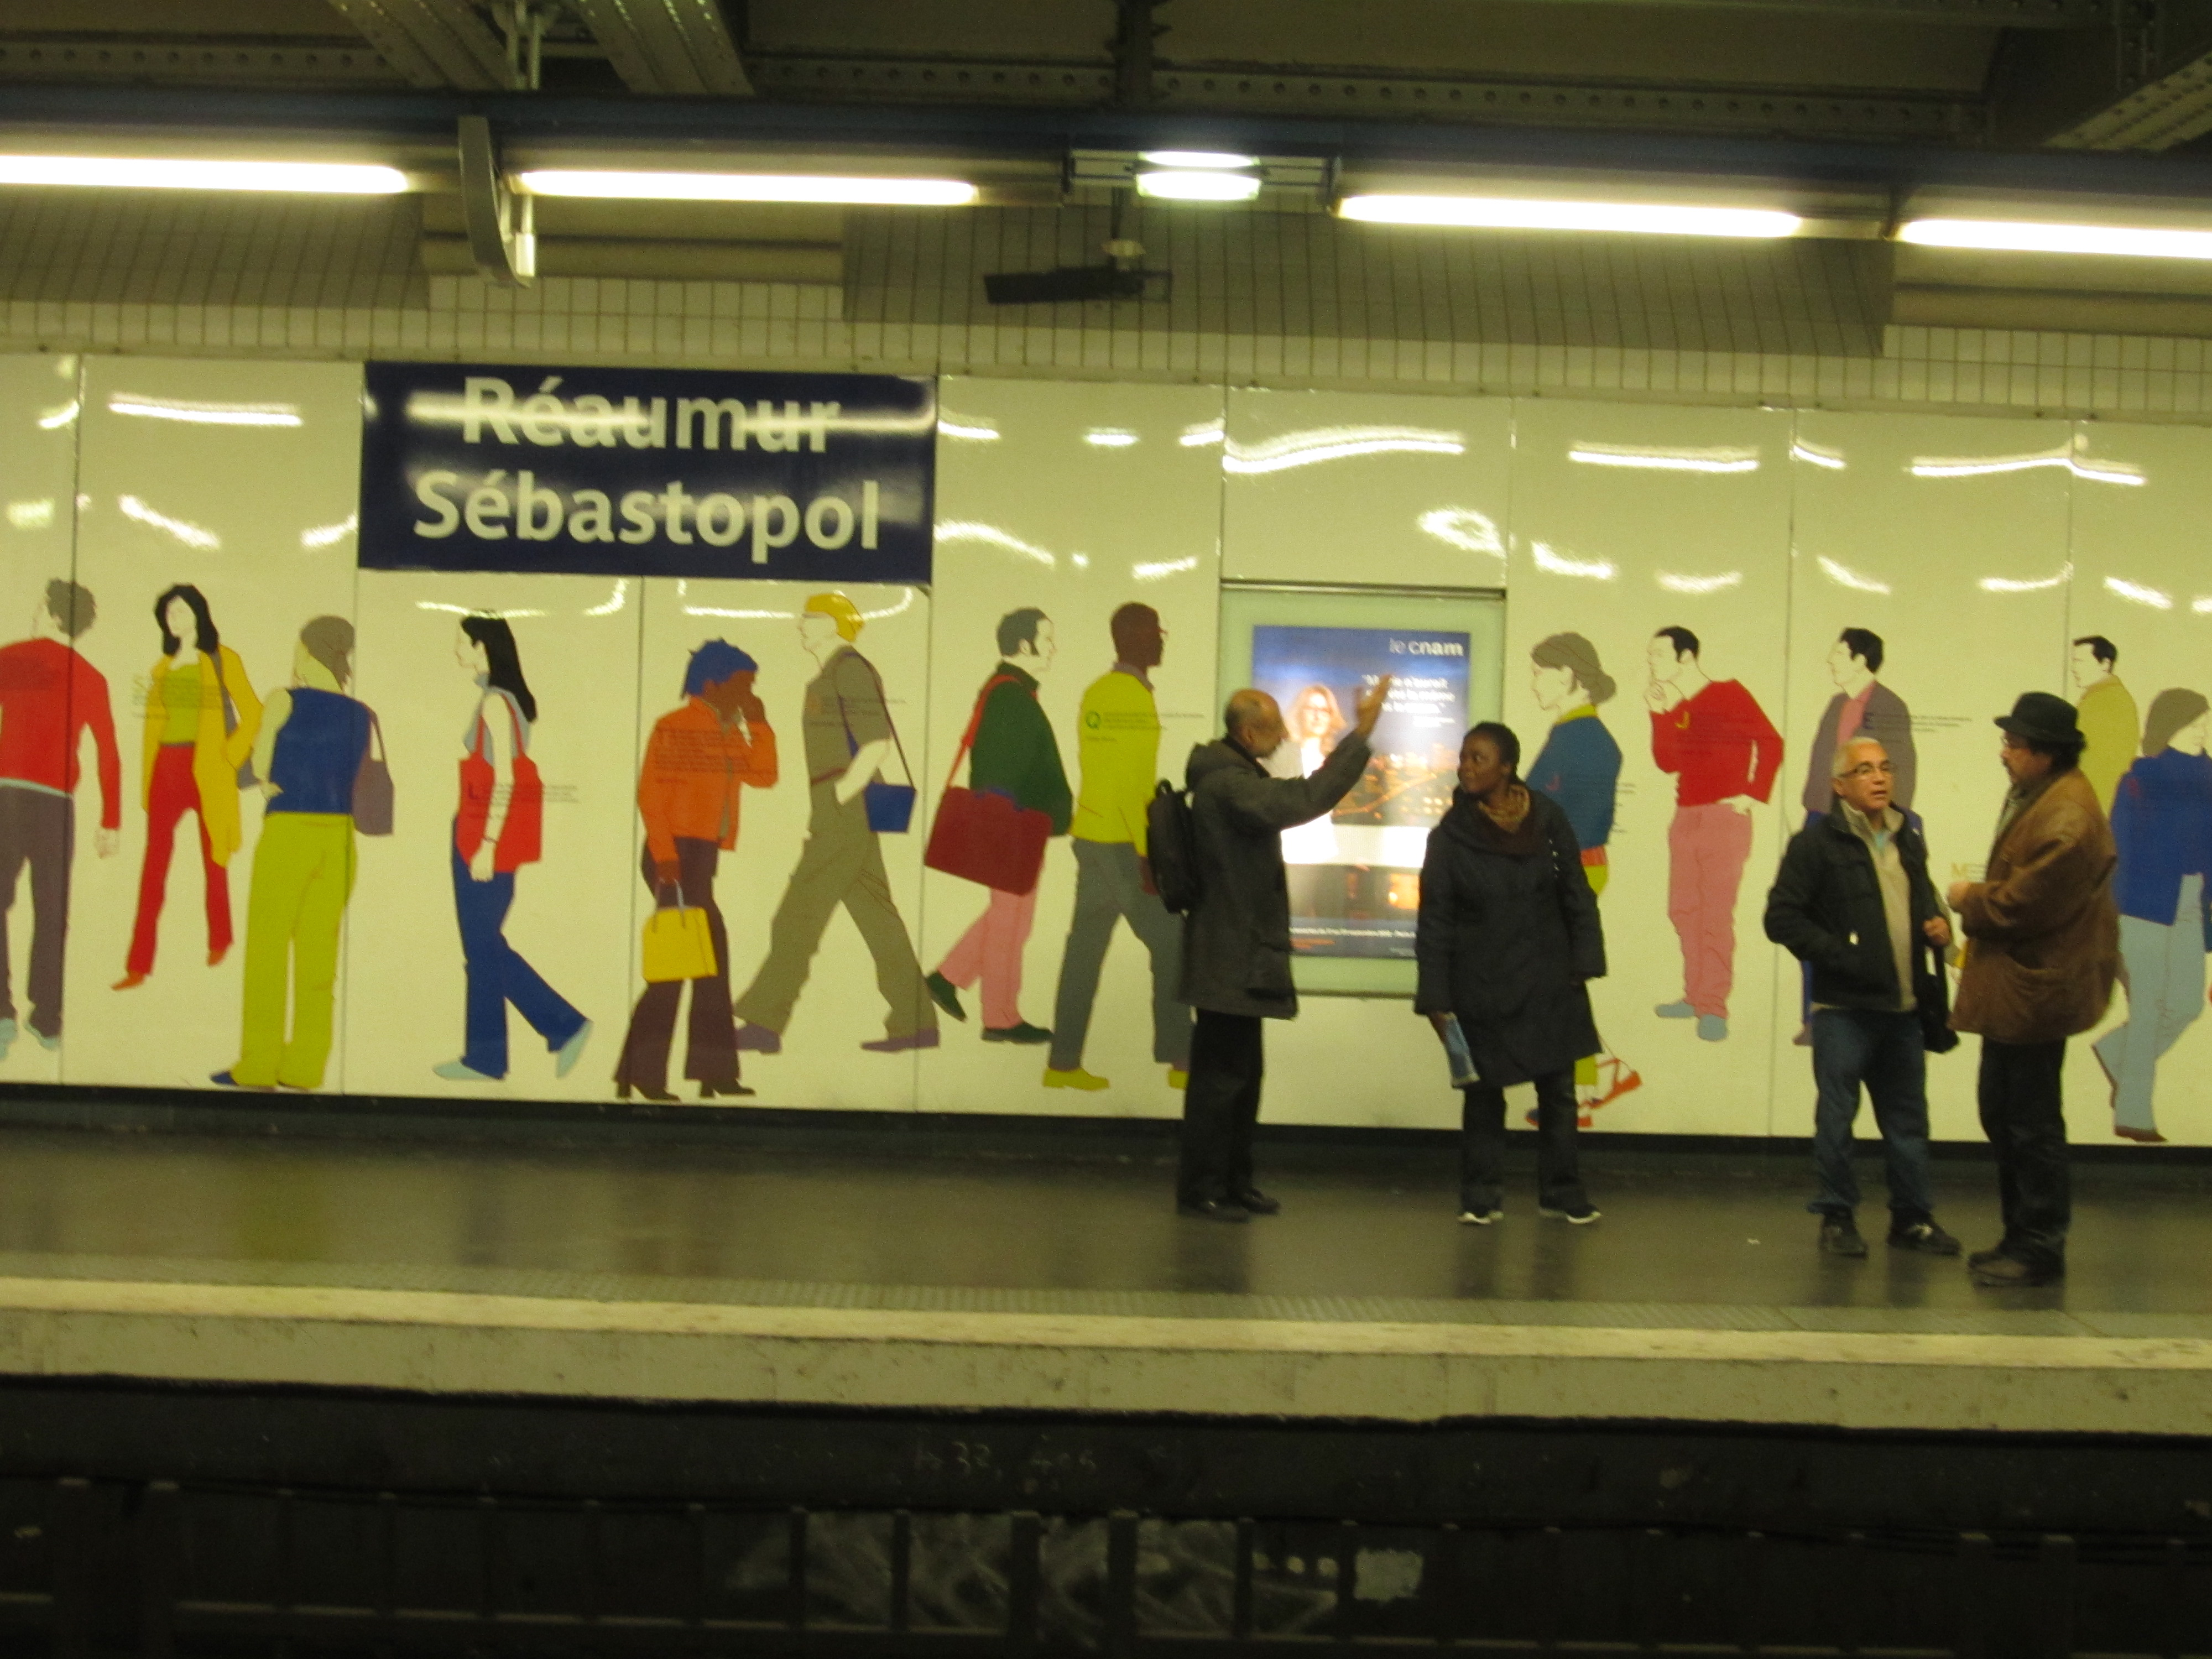 reaumur sebastopol station in paris with public artwork